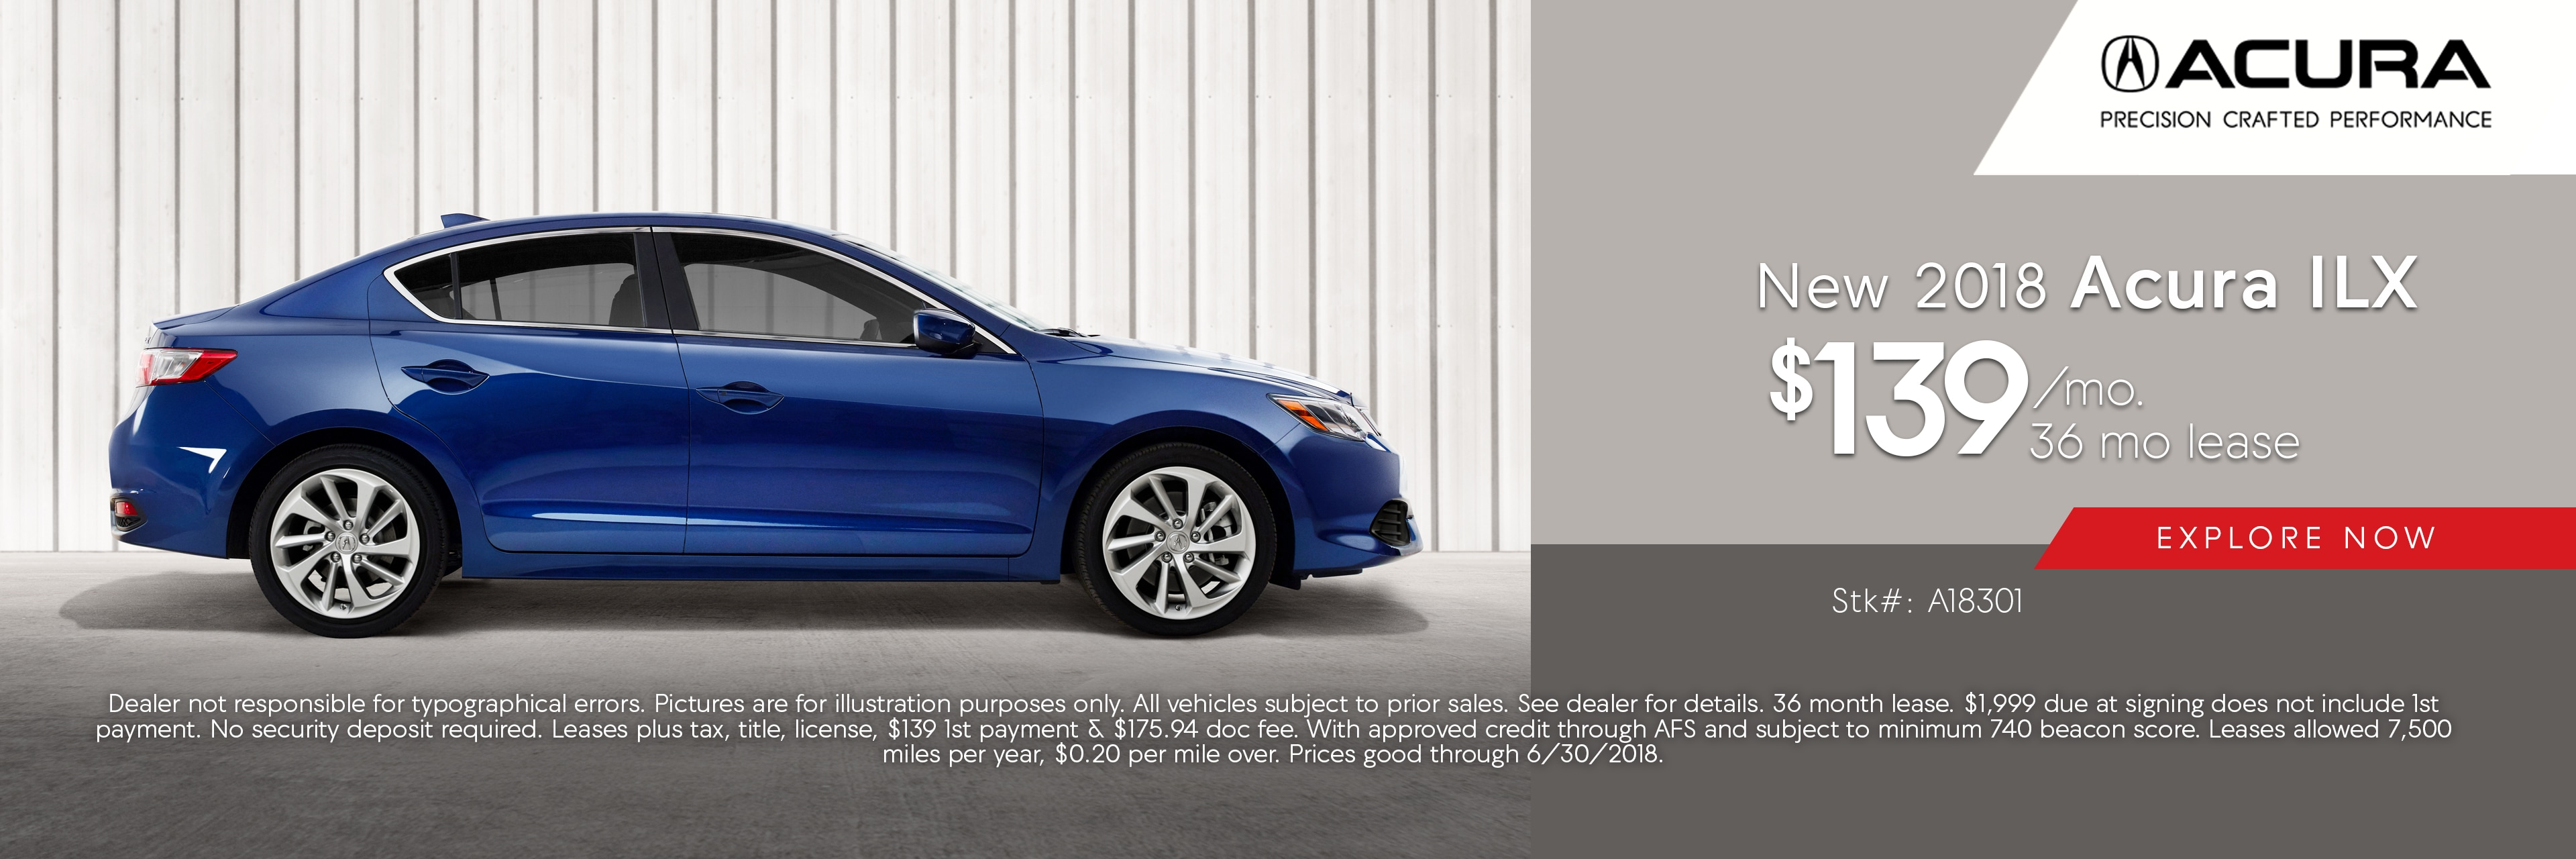 new elmhurst ed specials acura lease car napleton deals il view htm